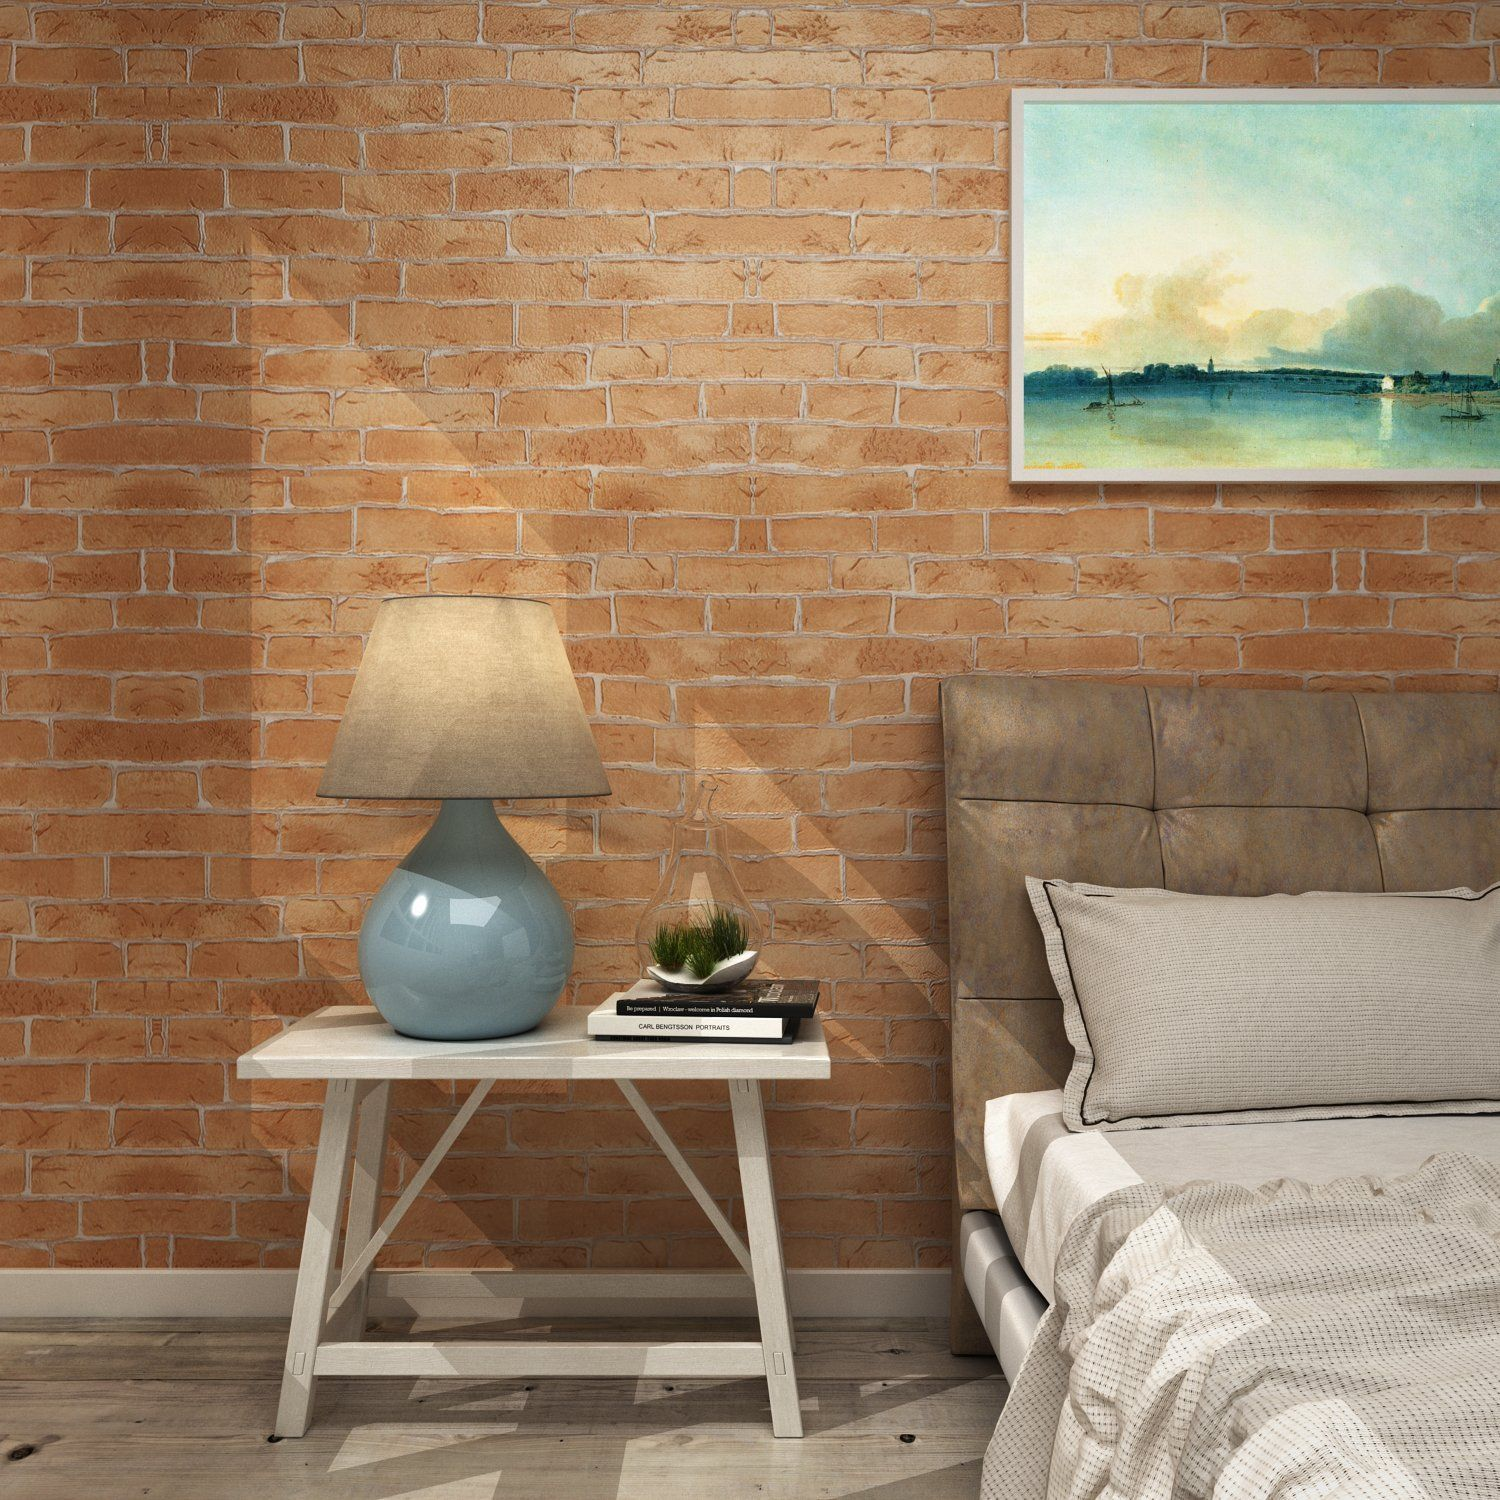 Homdox Wallpaper Modern Faux Brick Stone Textured Wallpaper 3D